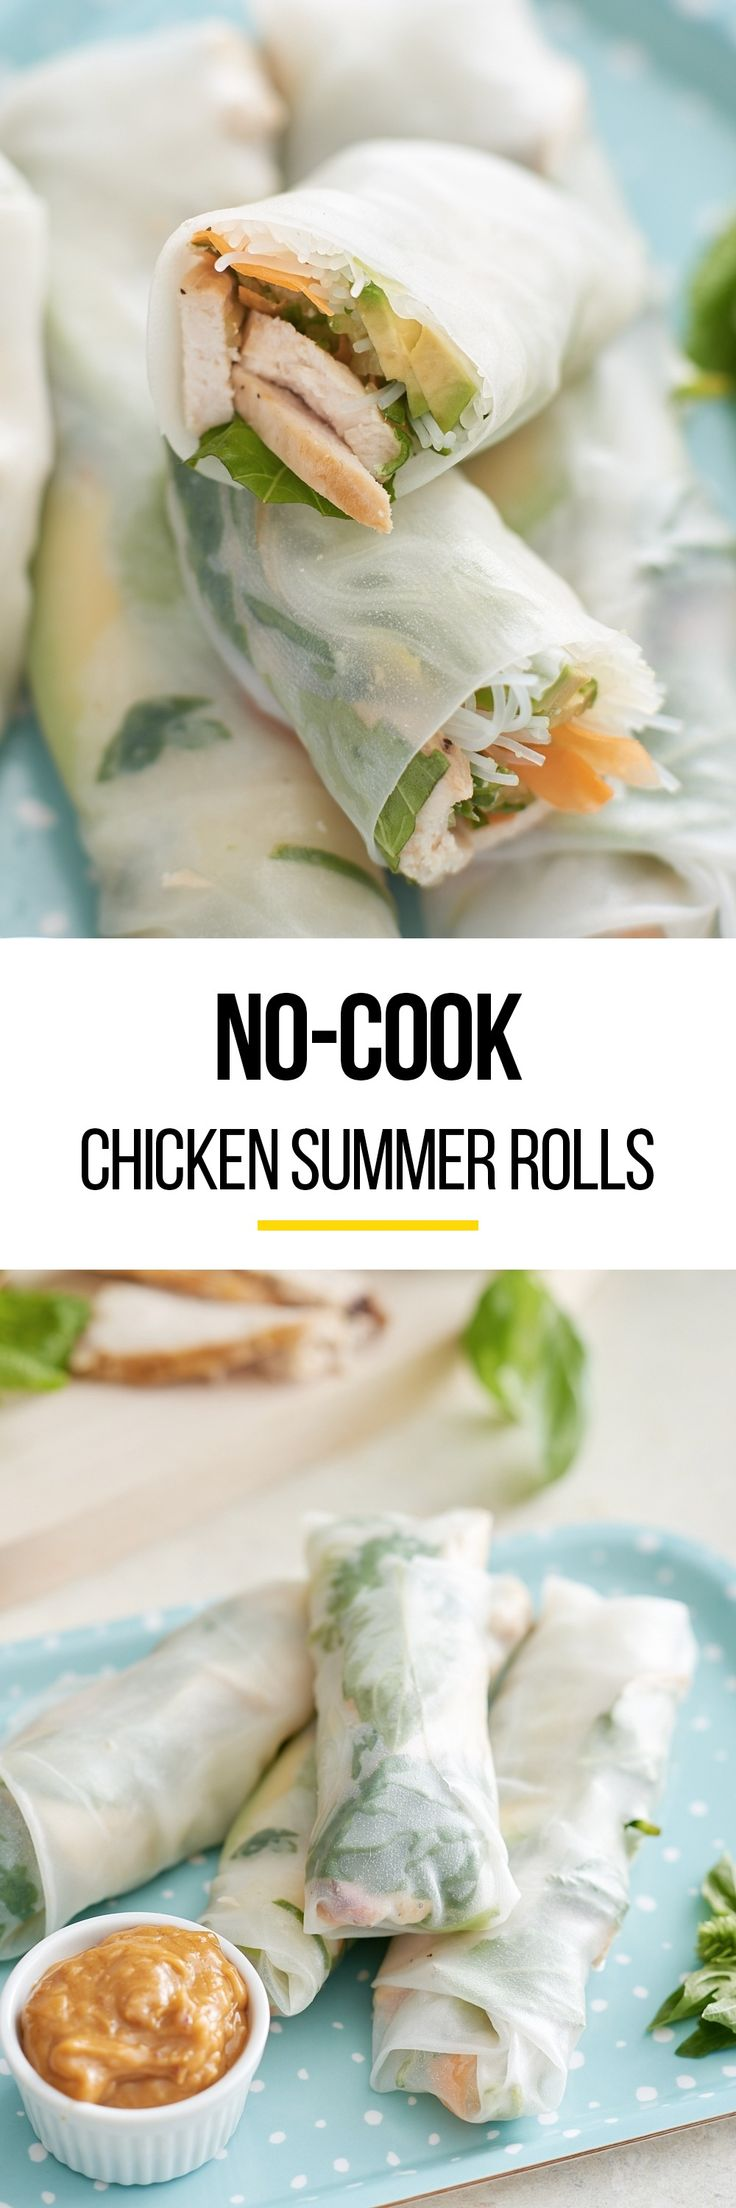 No-Cook Chicken Summer Rolls Recipe. Looking for fresh and easy recipes and ideas for weeknight meals? These healthy Vietnamese rolls are full of chicken (use leftover or shredded rotisserie chicken), veggies, herbs, avocado, and rice noodles. Easy to make vegetarian and served with a luscious peanut sauce .